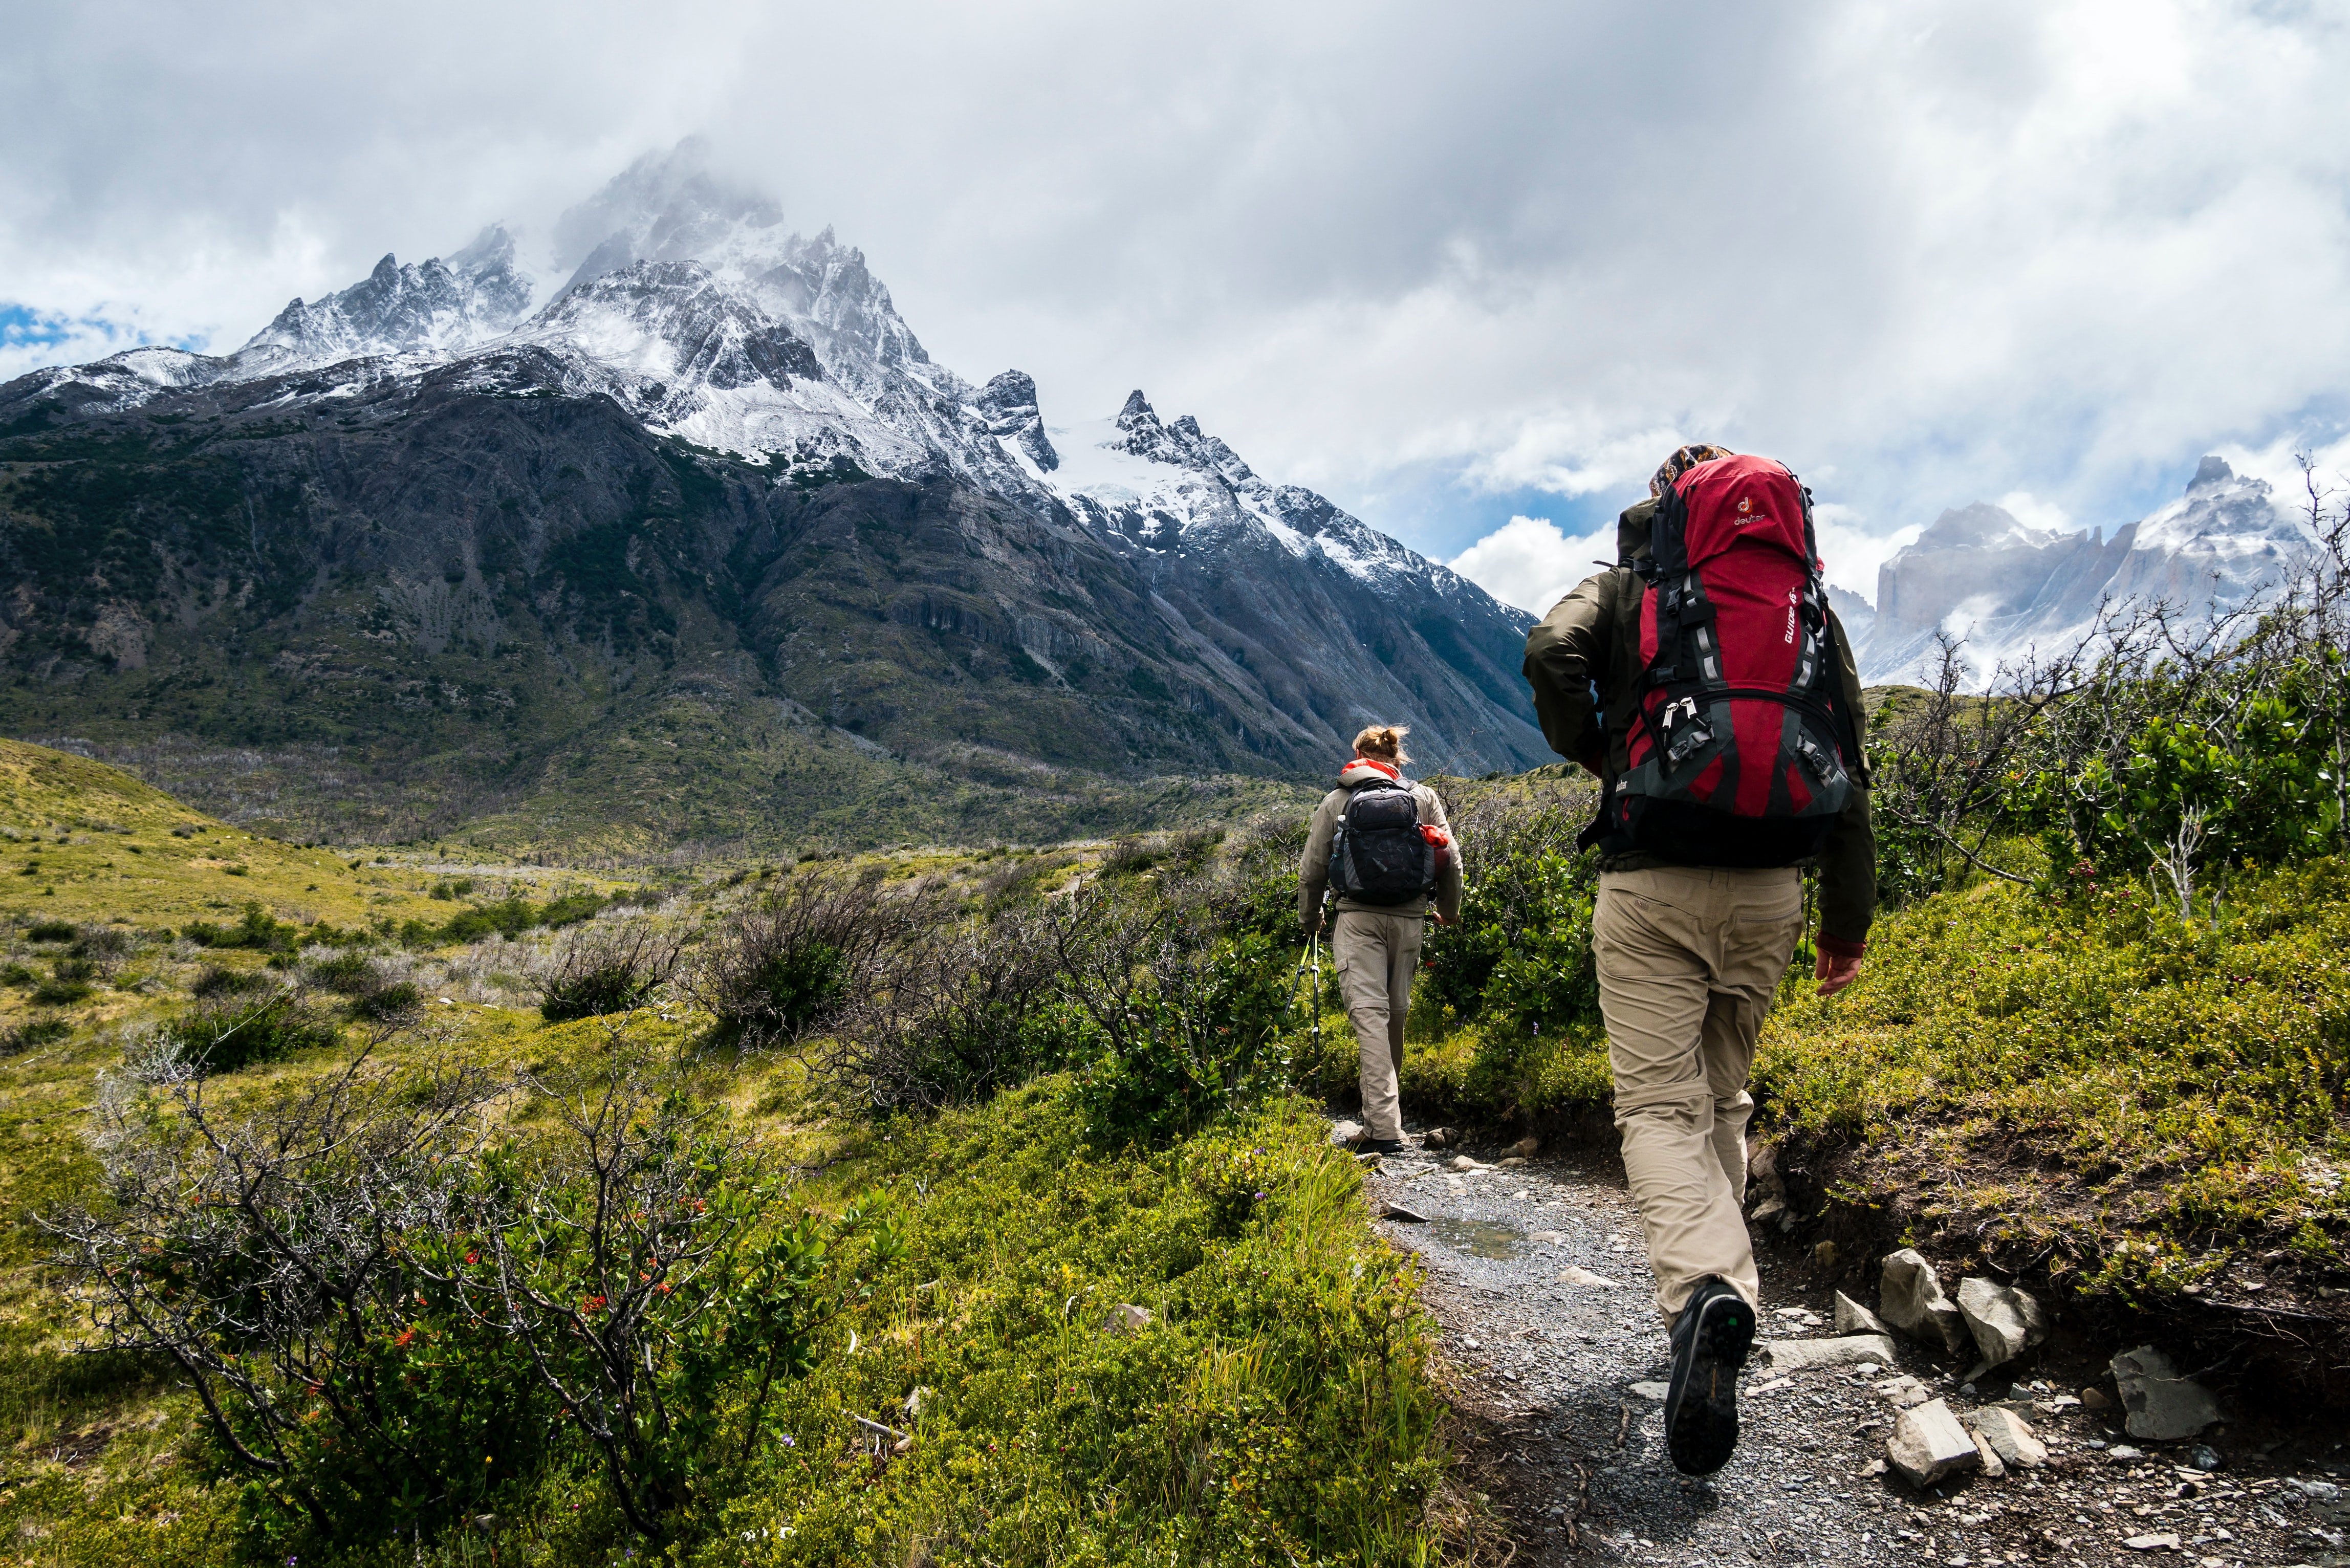 What Clothing to Wear When Hiking In Fall